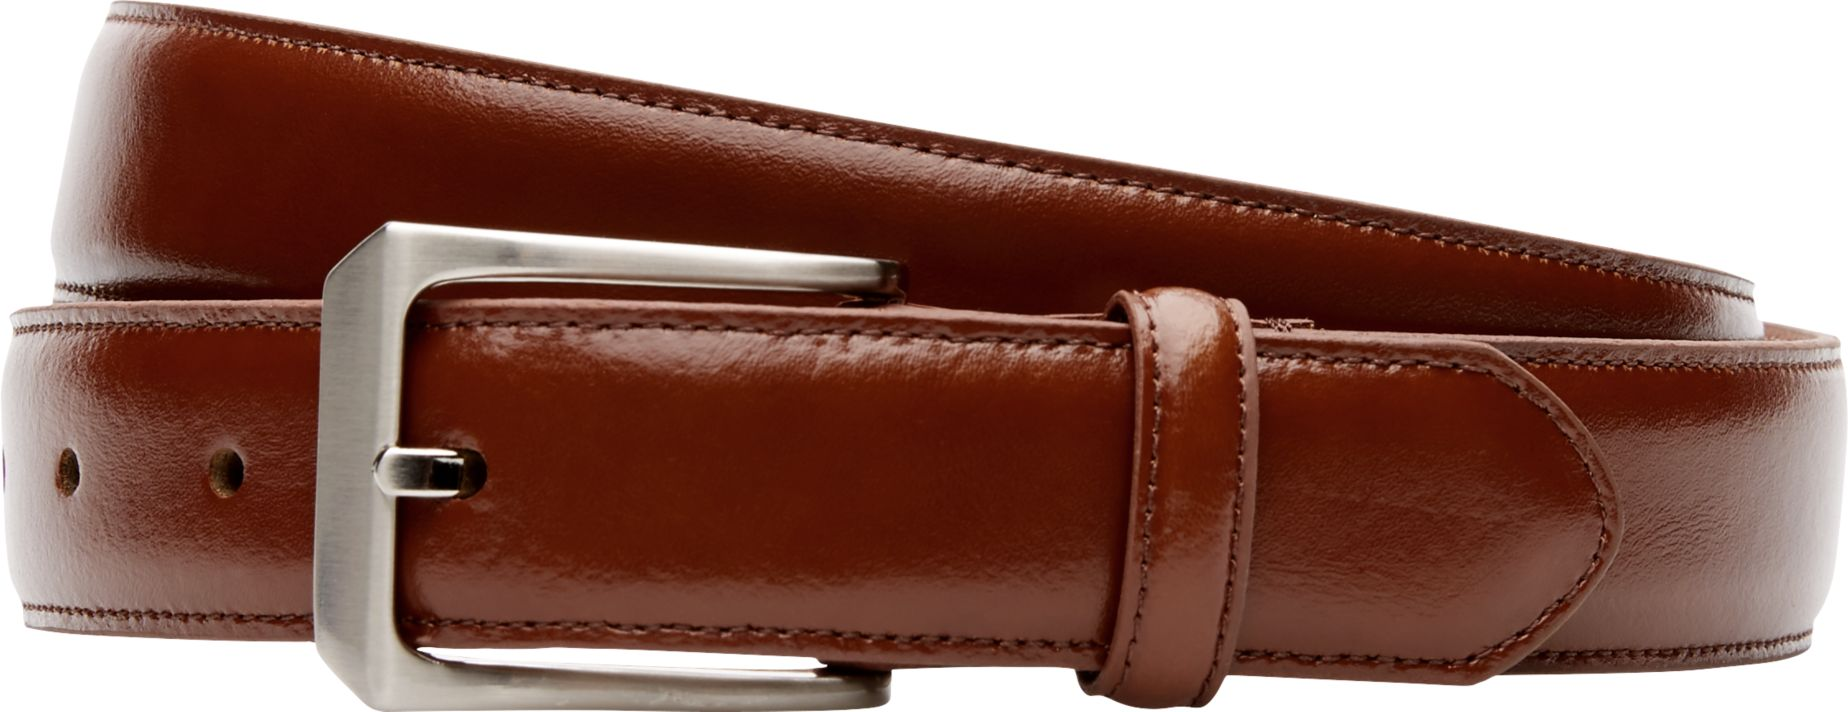 Cognac Bank Jos A Bank Glazed Leather Belt Big Tall